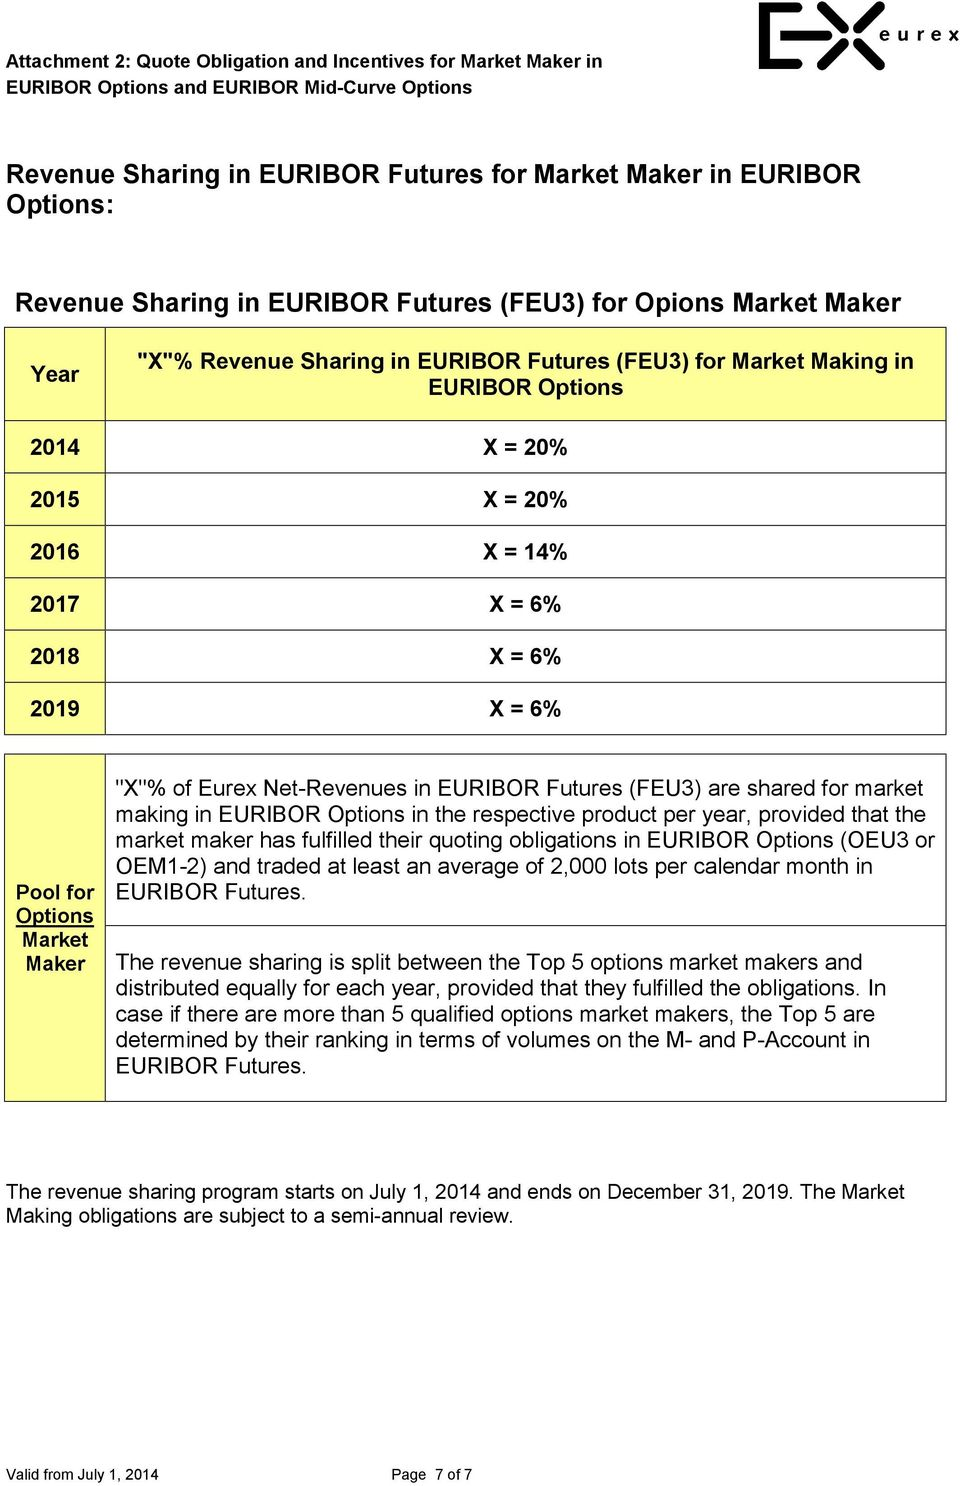 shared for market making in EURIBOR Options in the respective product per year, provided that the market maker has fulfilled their quoting obligations in EURIBOR Options (OEU3 or OEM1-2) and traded